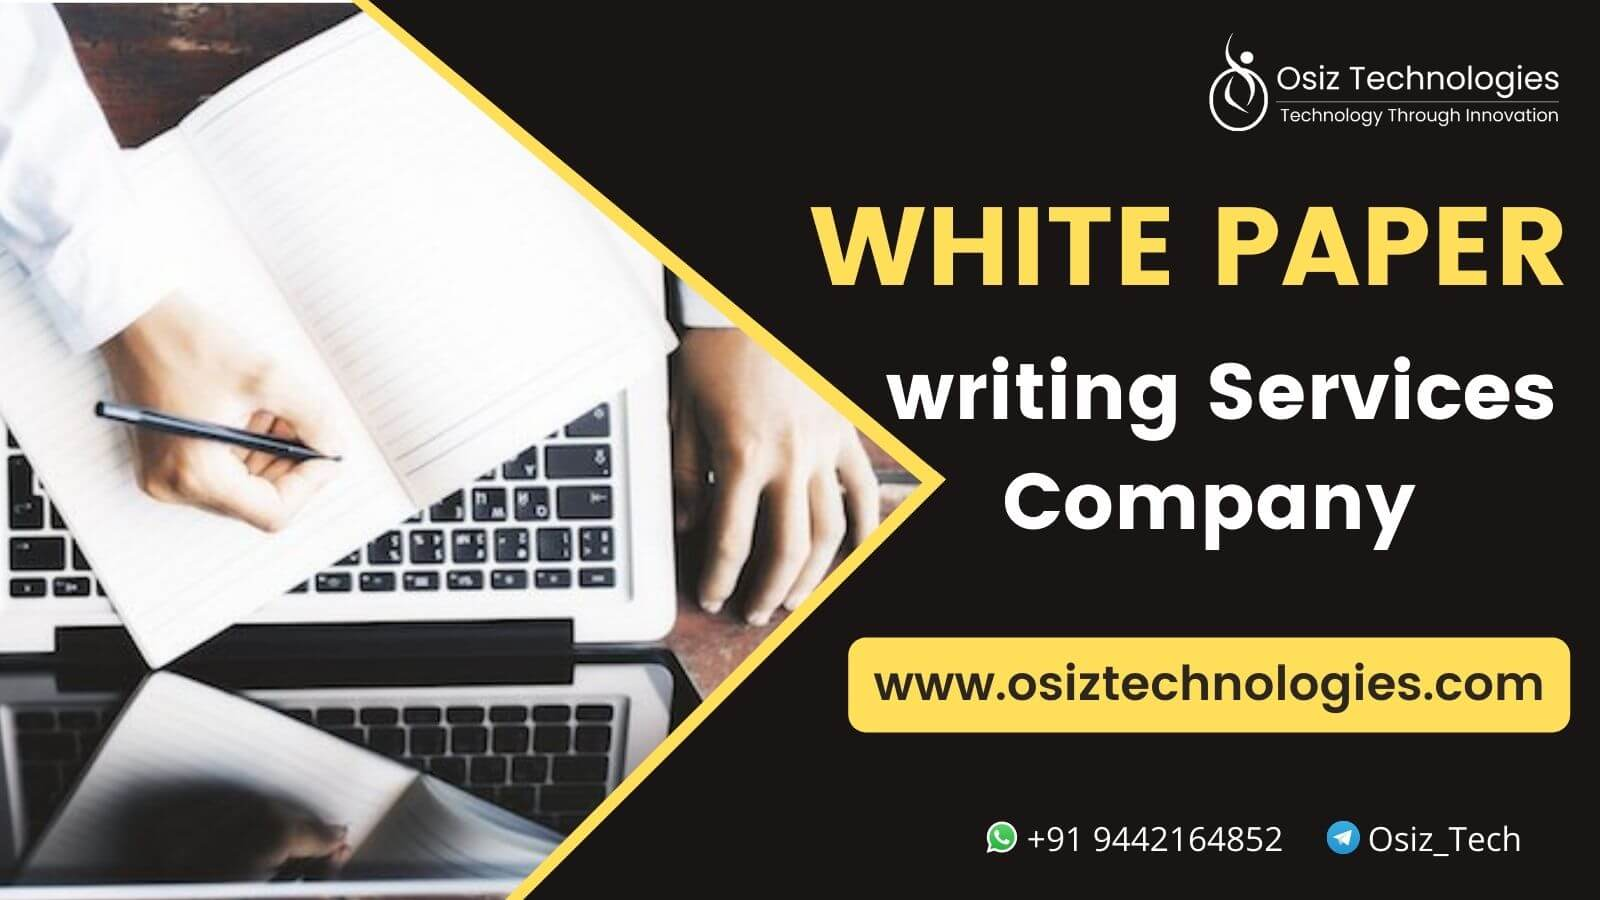 Whitepaper writing services company